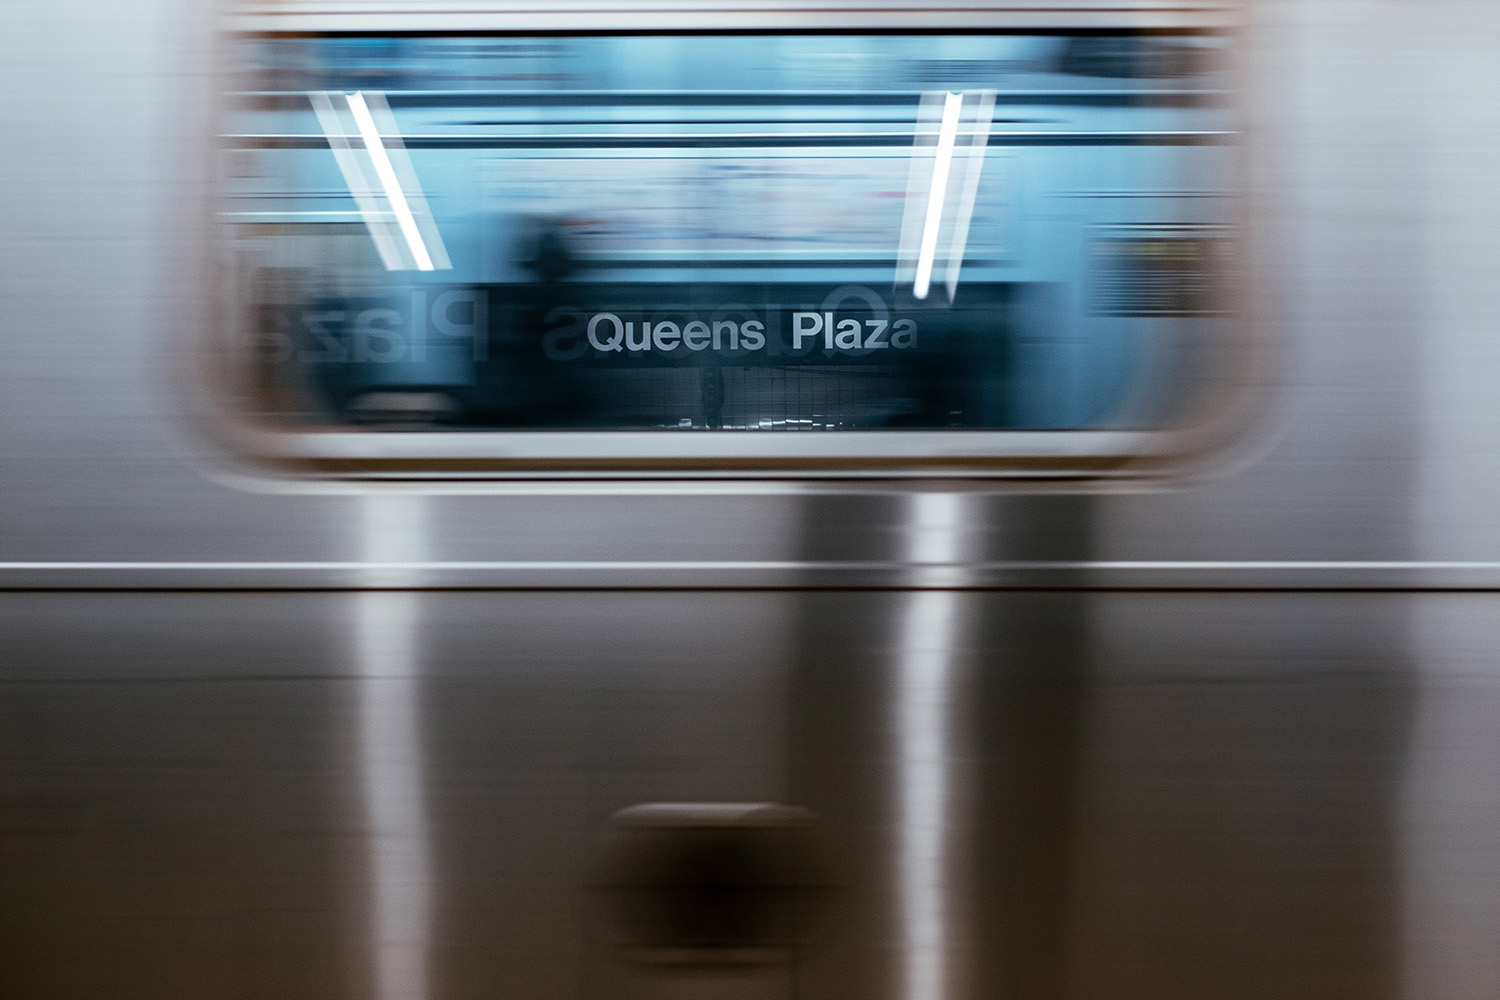 subway train passing